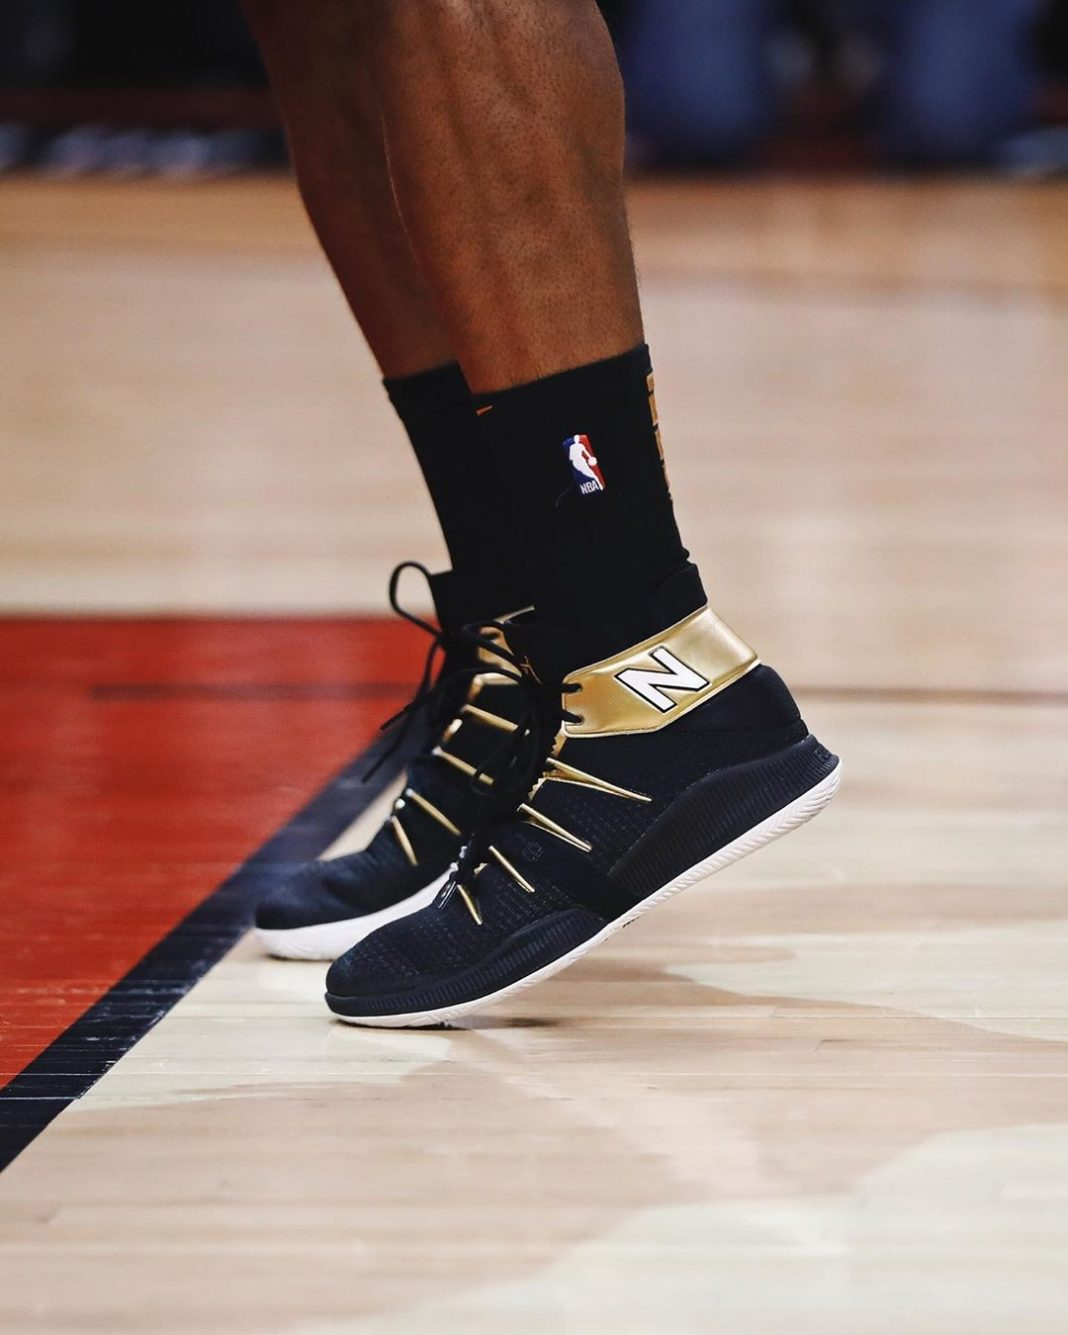 Kawhi Leonard wearing the trophy gold @nbhoops OMN1S for Game 1 of the NBA Final...